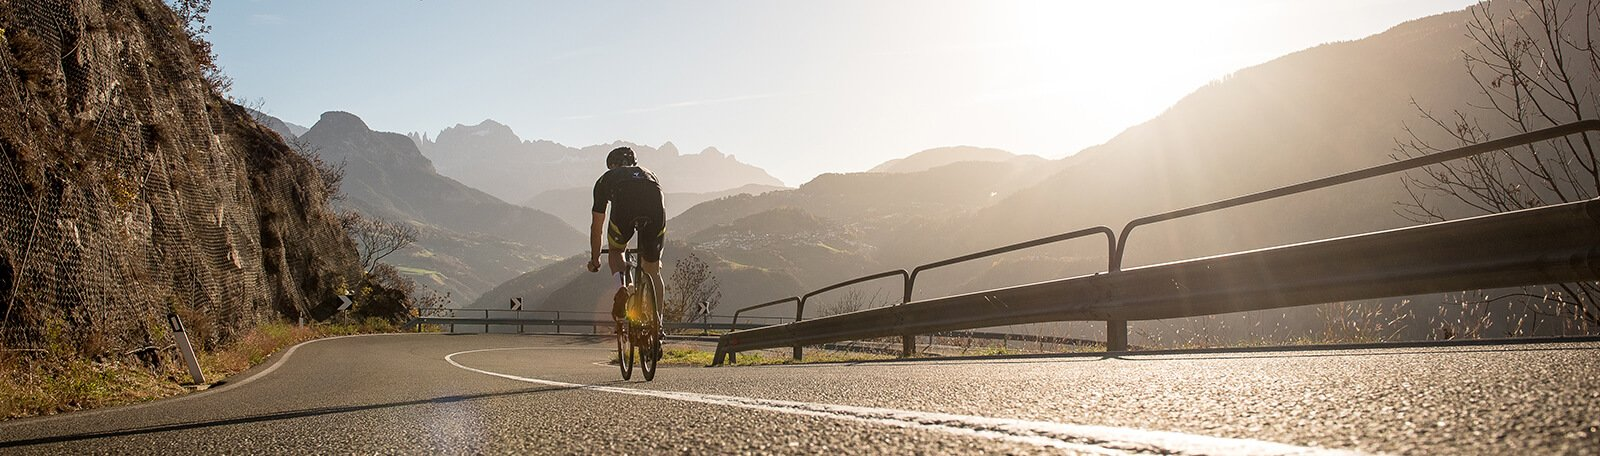 Man cycling on a road in the mountains